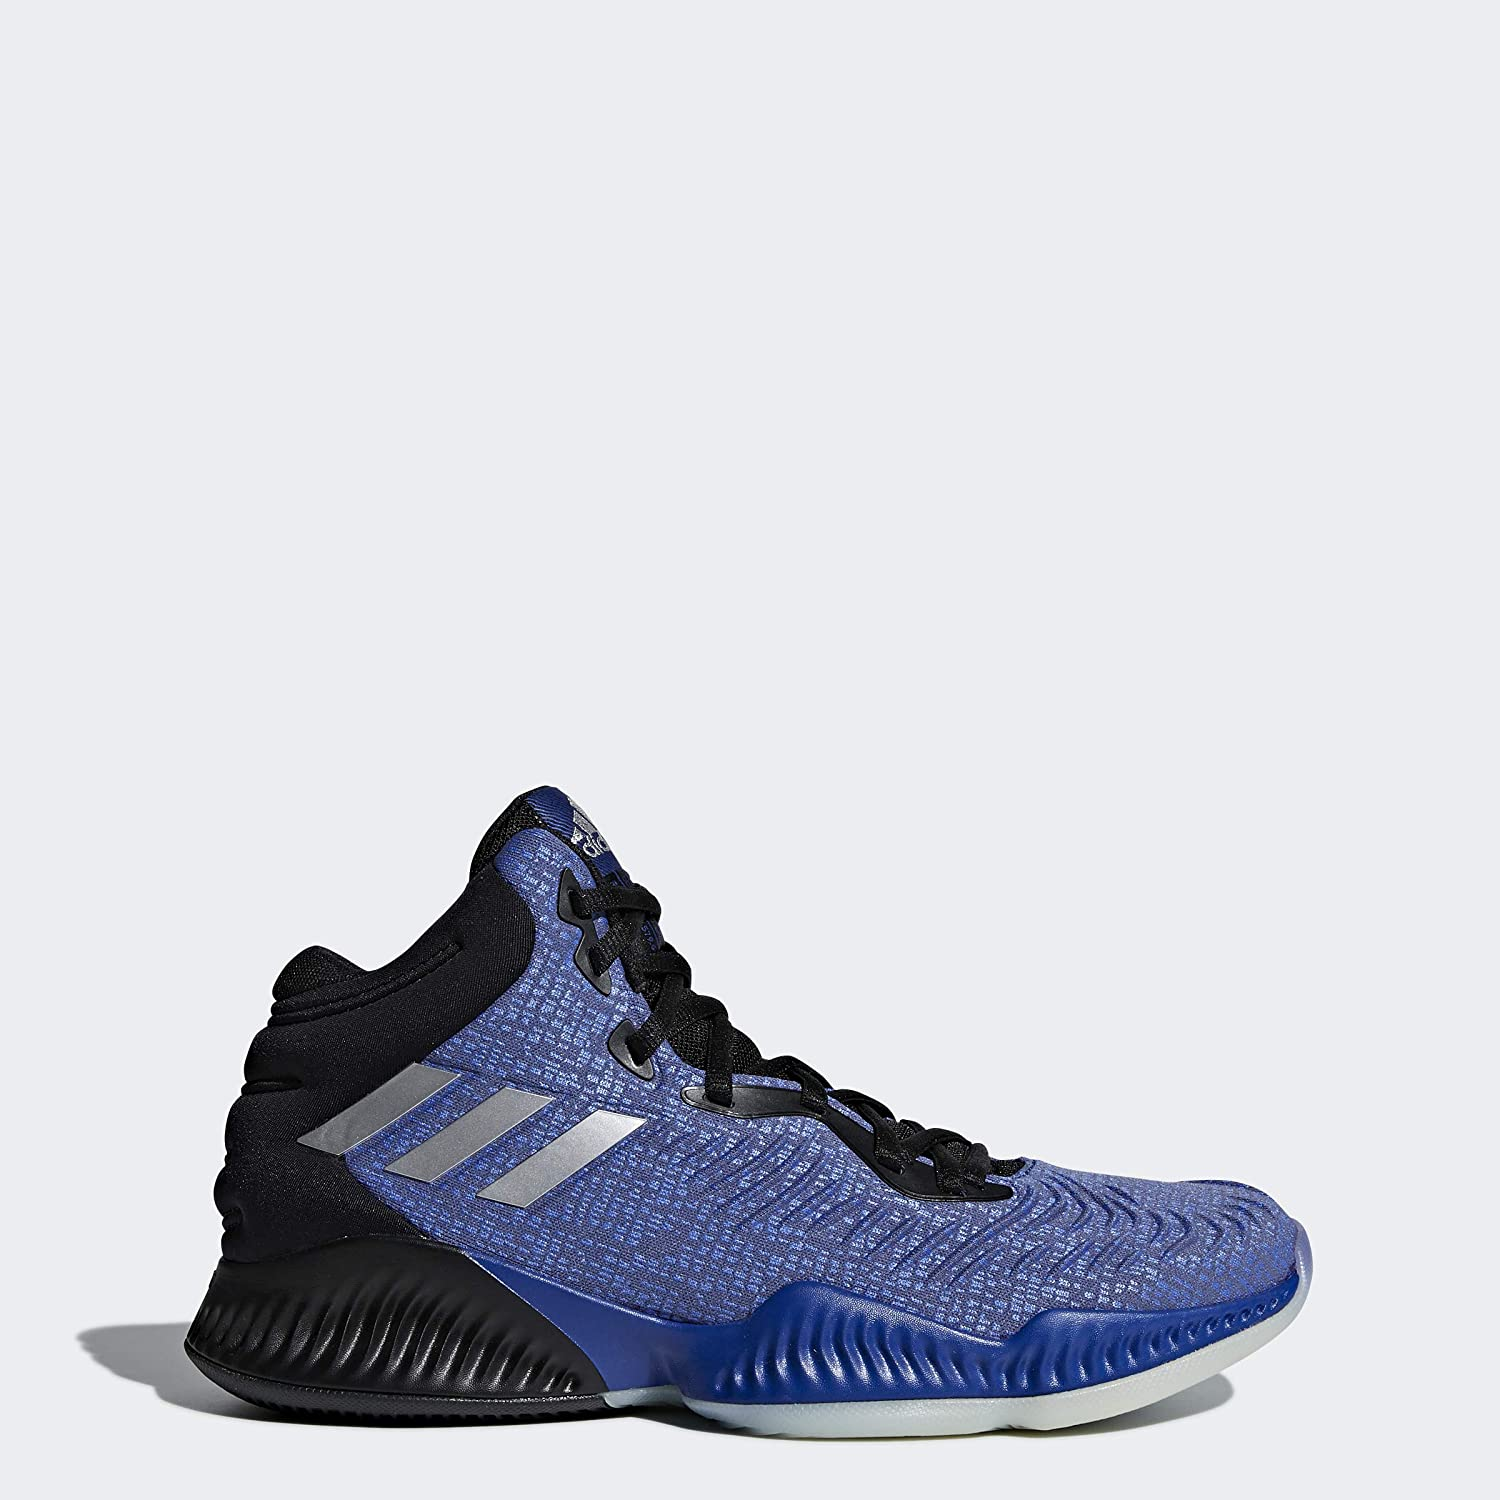 experiencia bandera claro  Adidas Men's Shoes Mad Bounce 2018 Hight Top Lace Up Basketball Shoes:  Amazon.ca: Sports & Outdoors